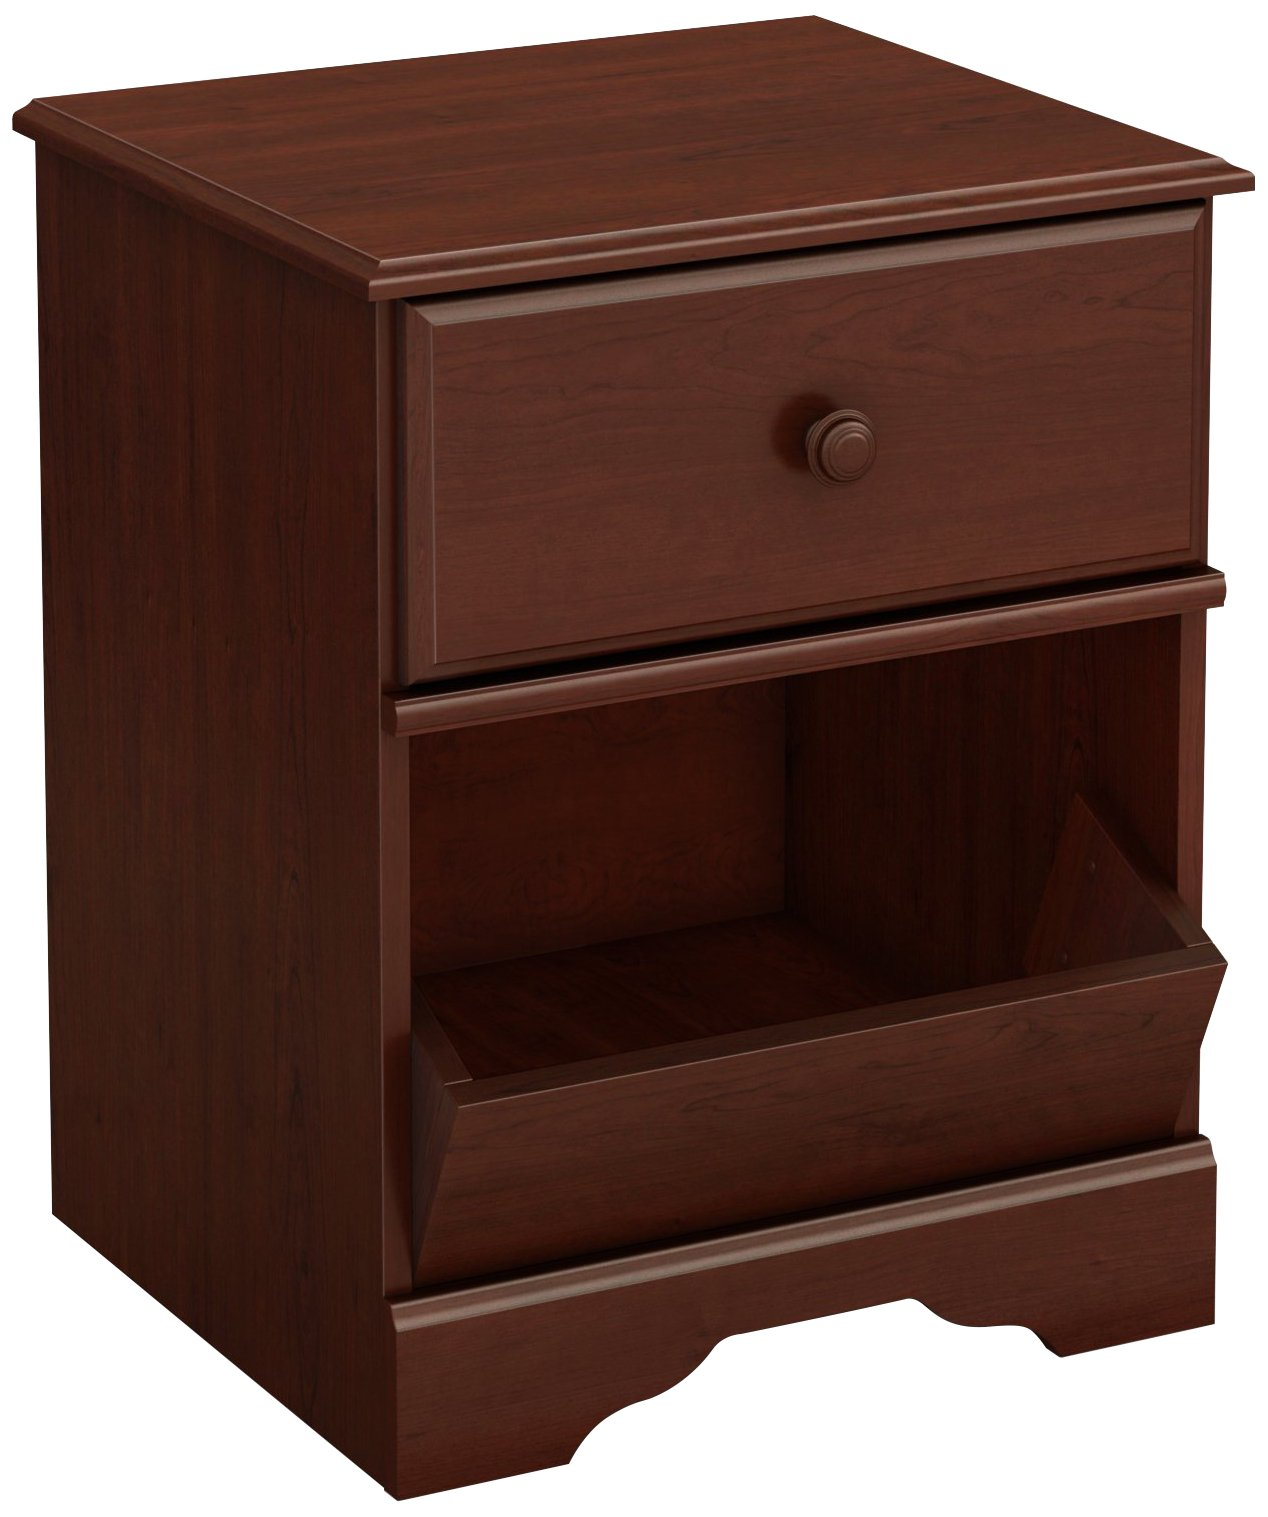 South Shore Little Treasures 1-Drawer Night Stand, Royal Cherry